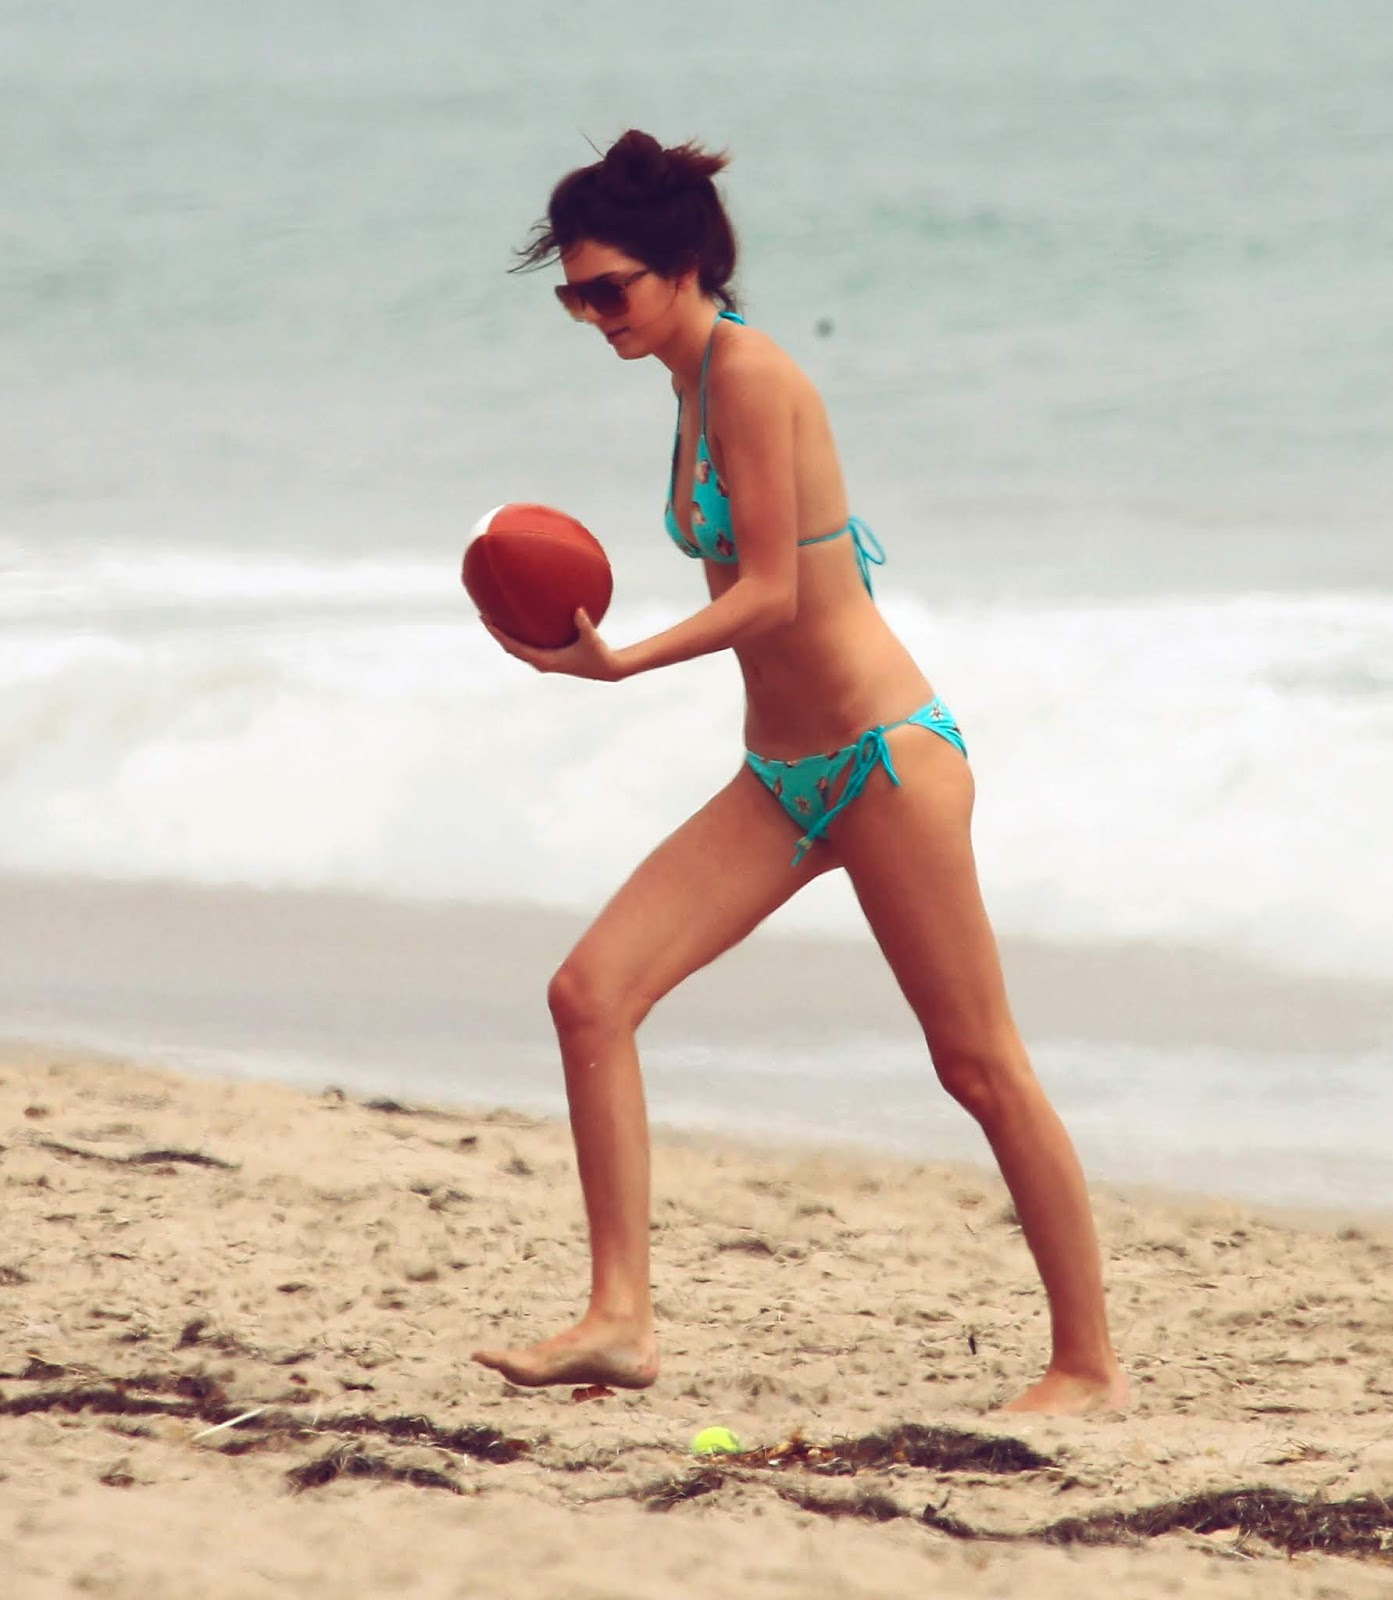 18 - At a Beach with friends in Malibu California on July 14, 2012